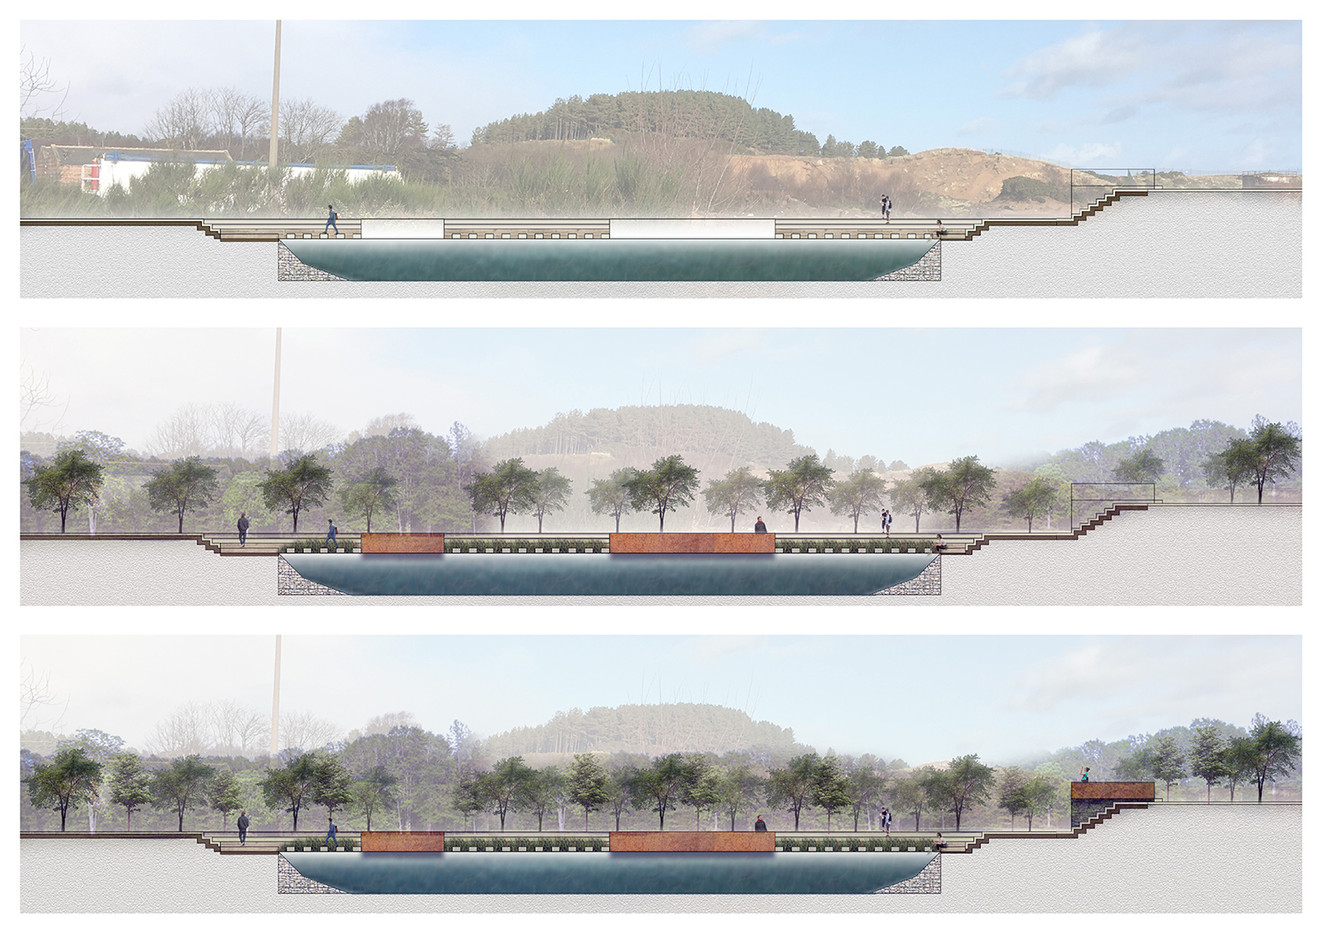 Garnock Valley: Retention Basin Visualisation, Pencil Sketch and Photoshop, 2020.